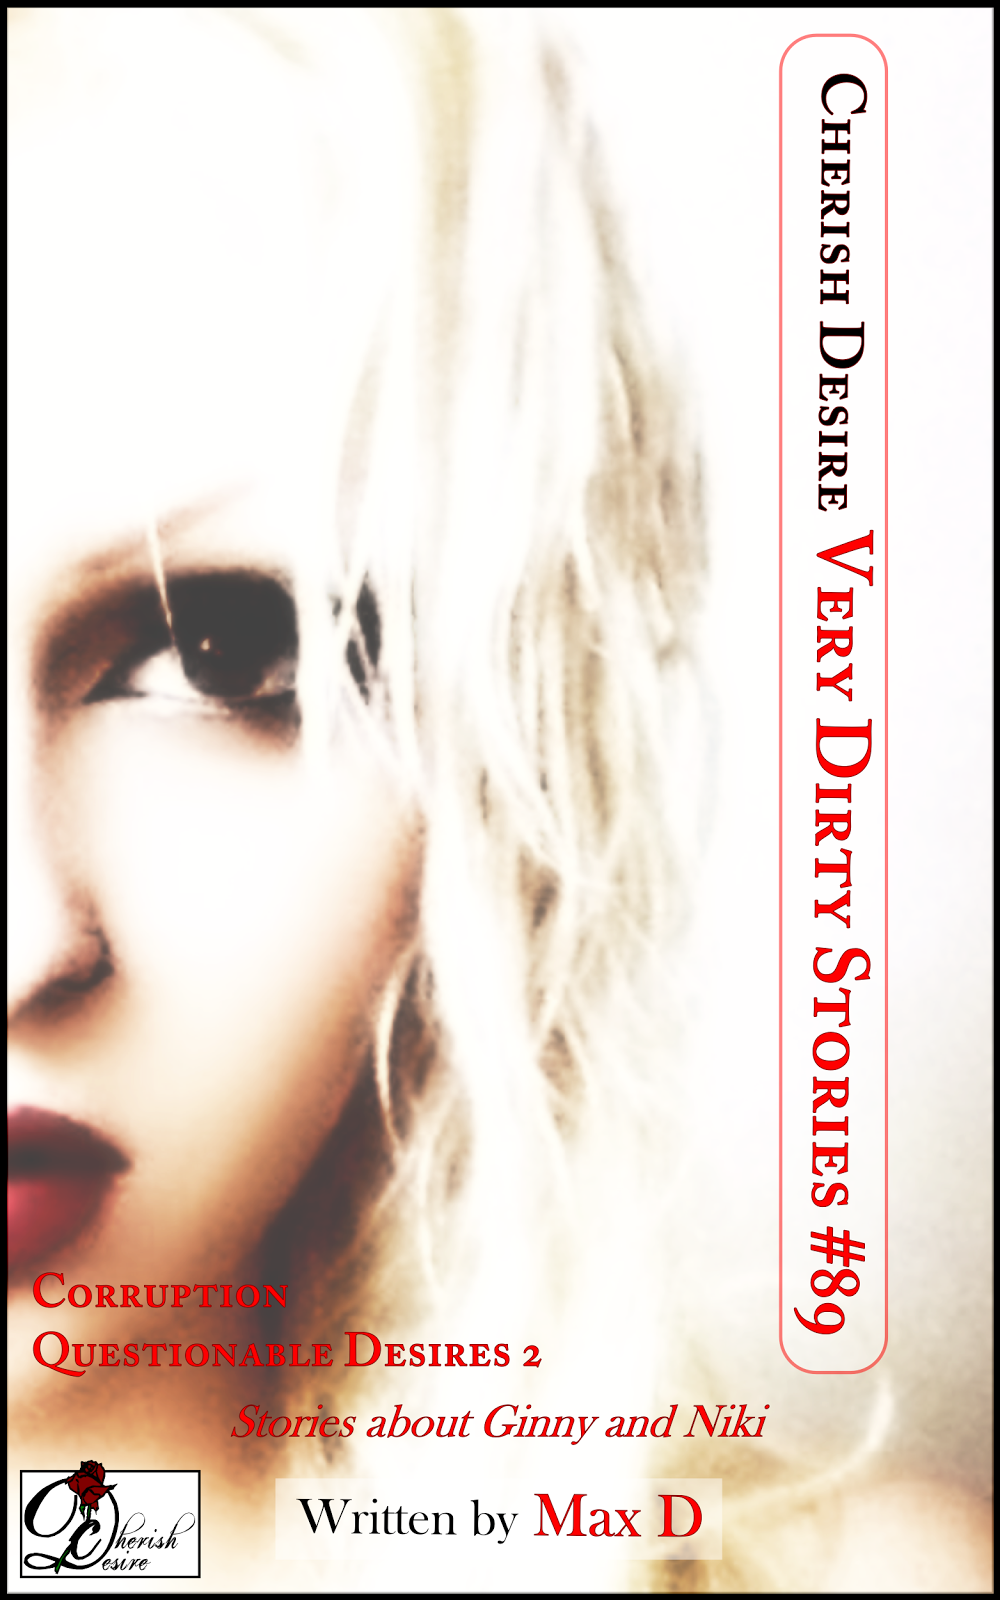 Cherish Desire: Very Dirty Stories #89, Max D, erotica